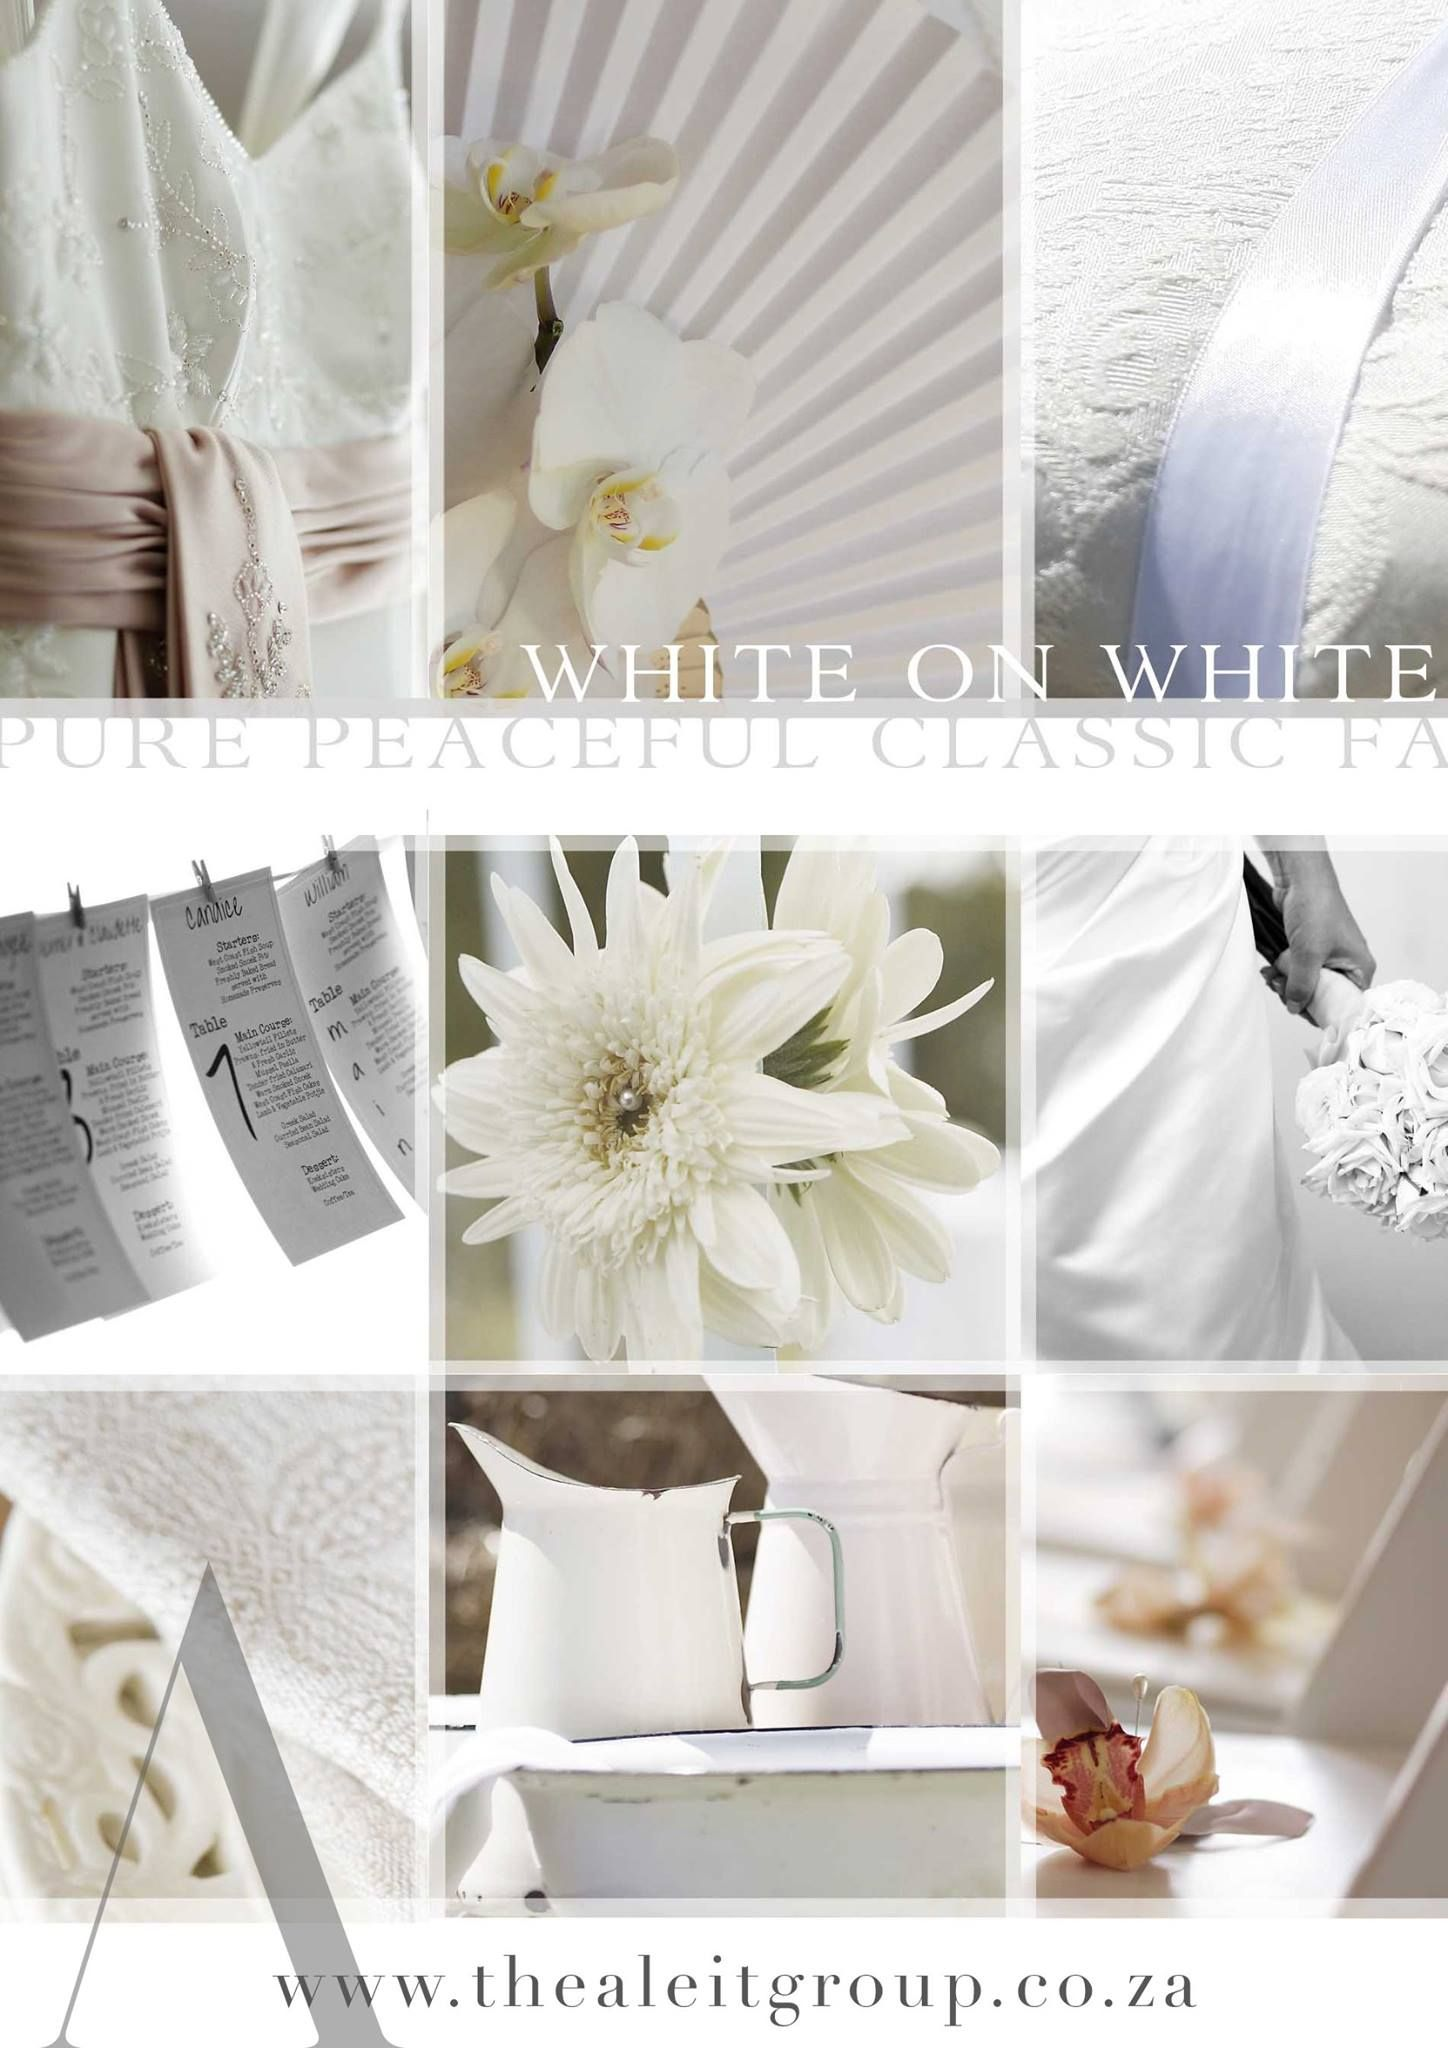 New White is Pure